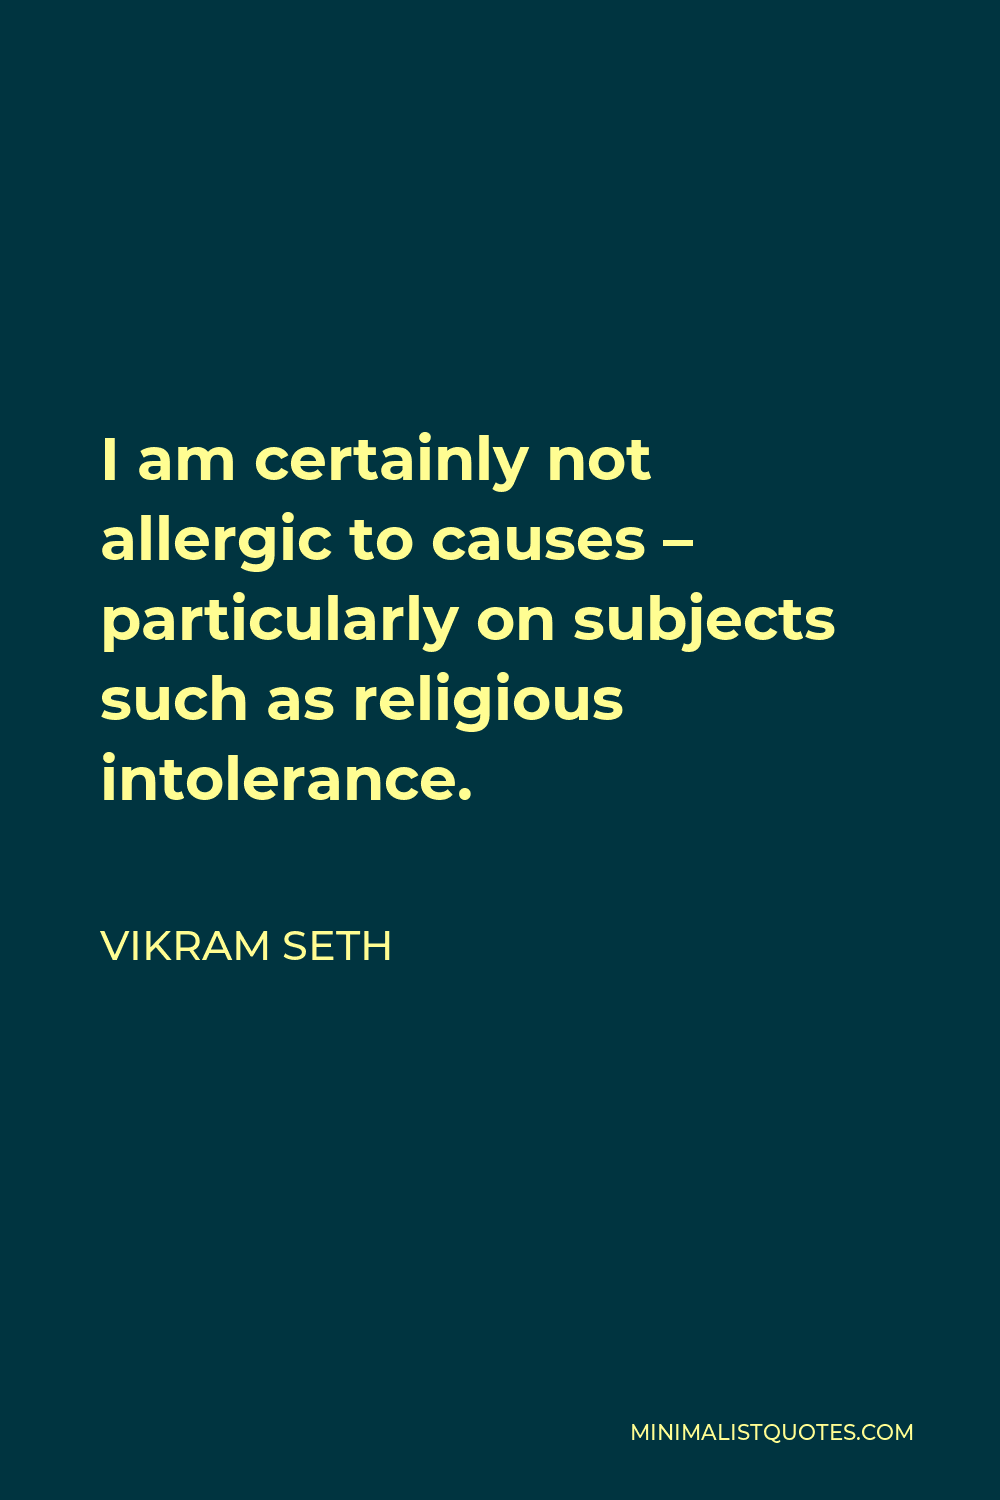 Vikram Seth Quote - I am certainly not allergic to causes – particularly on subjects such as religious intolerance.